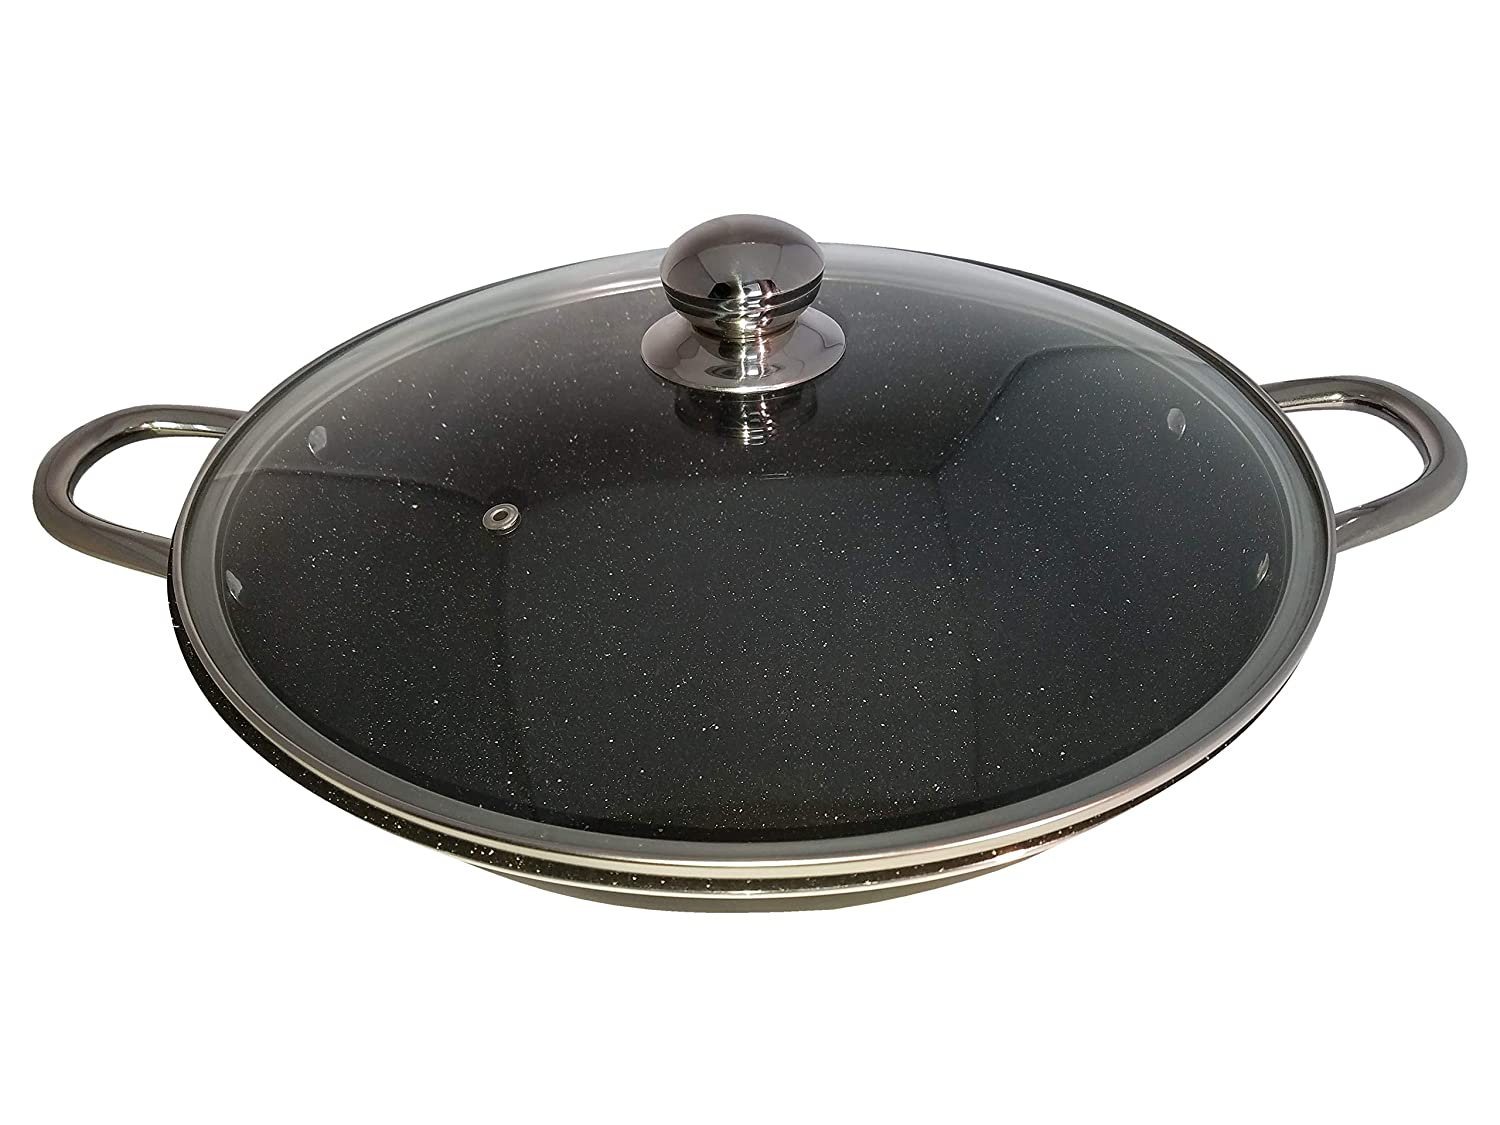 Granite Stone Non-Stick No Wrap Frying Pan (14 Inch) With Tempered Glass Lid PFOA Free Scratch Proof, Dishwasher Safe, Oven Safe.